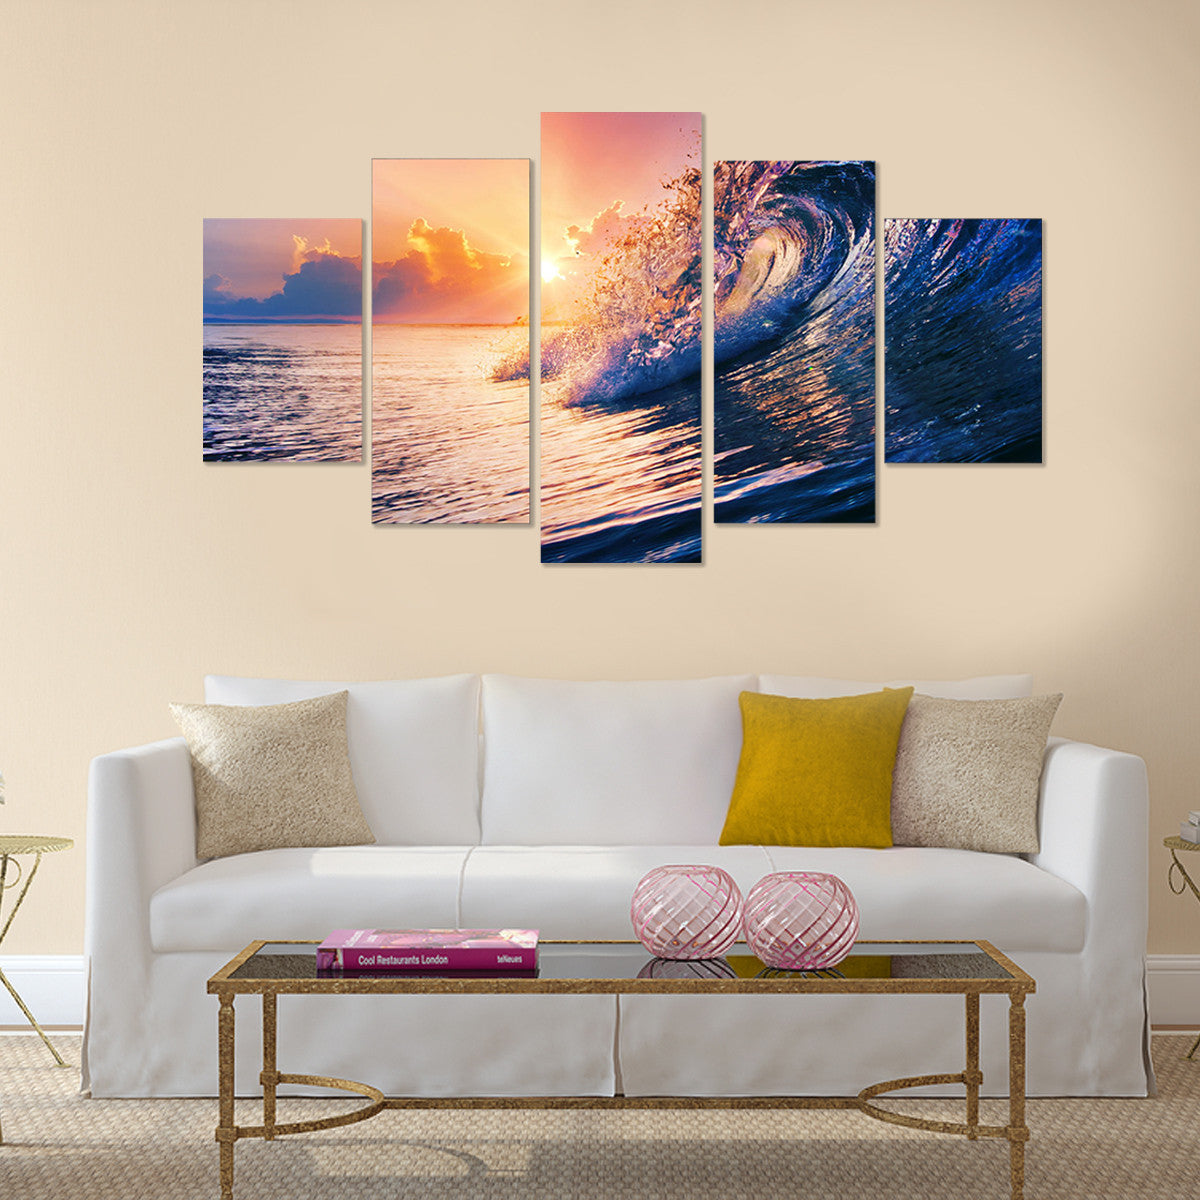 Seashore Waves 5 Piece Canvas